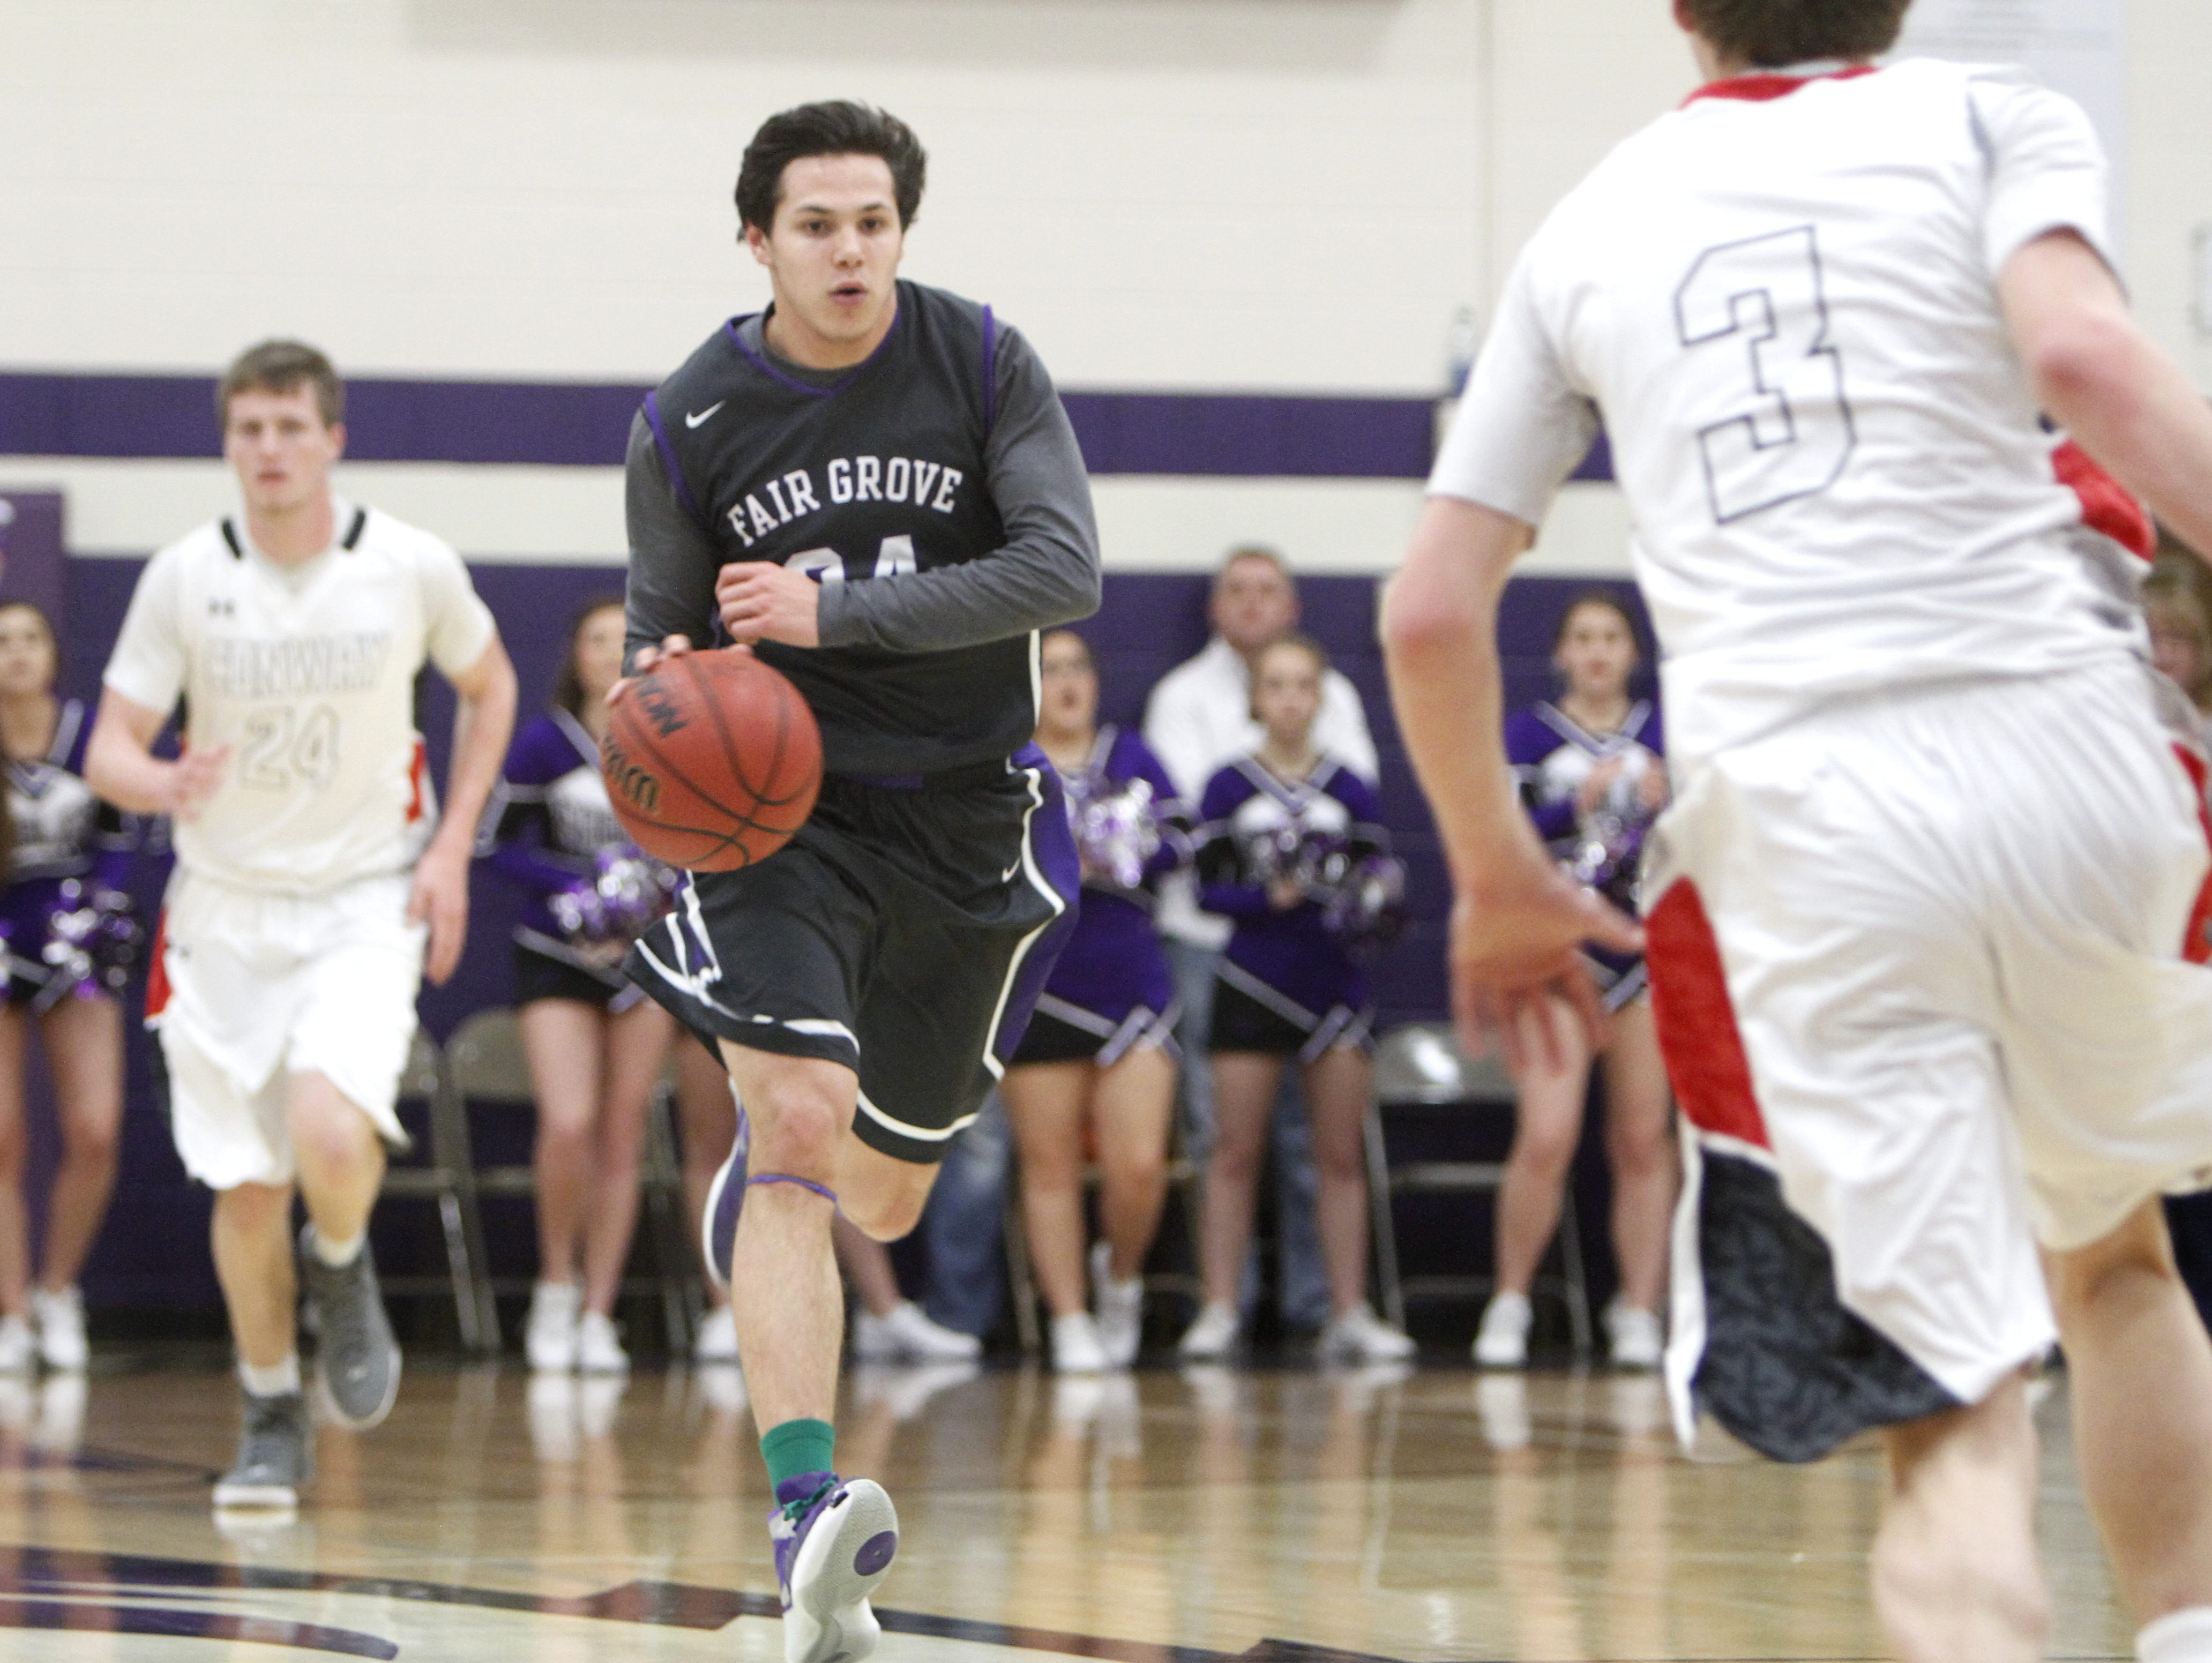 Fair Grove High School graduate Kyle Cavanaugh (center) is scheduled to play in the 2016 Gerald A. Pilz and Friends All-Star Game Saturday, July 9, at College of the Ozarks.